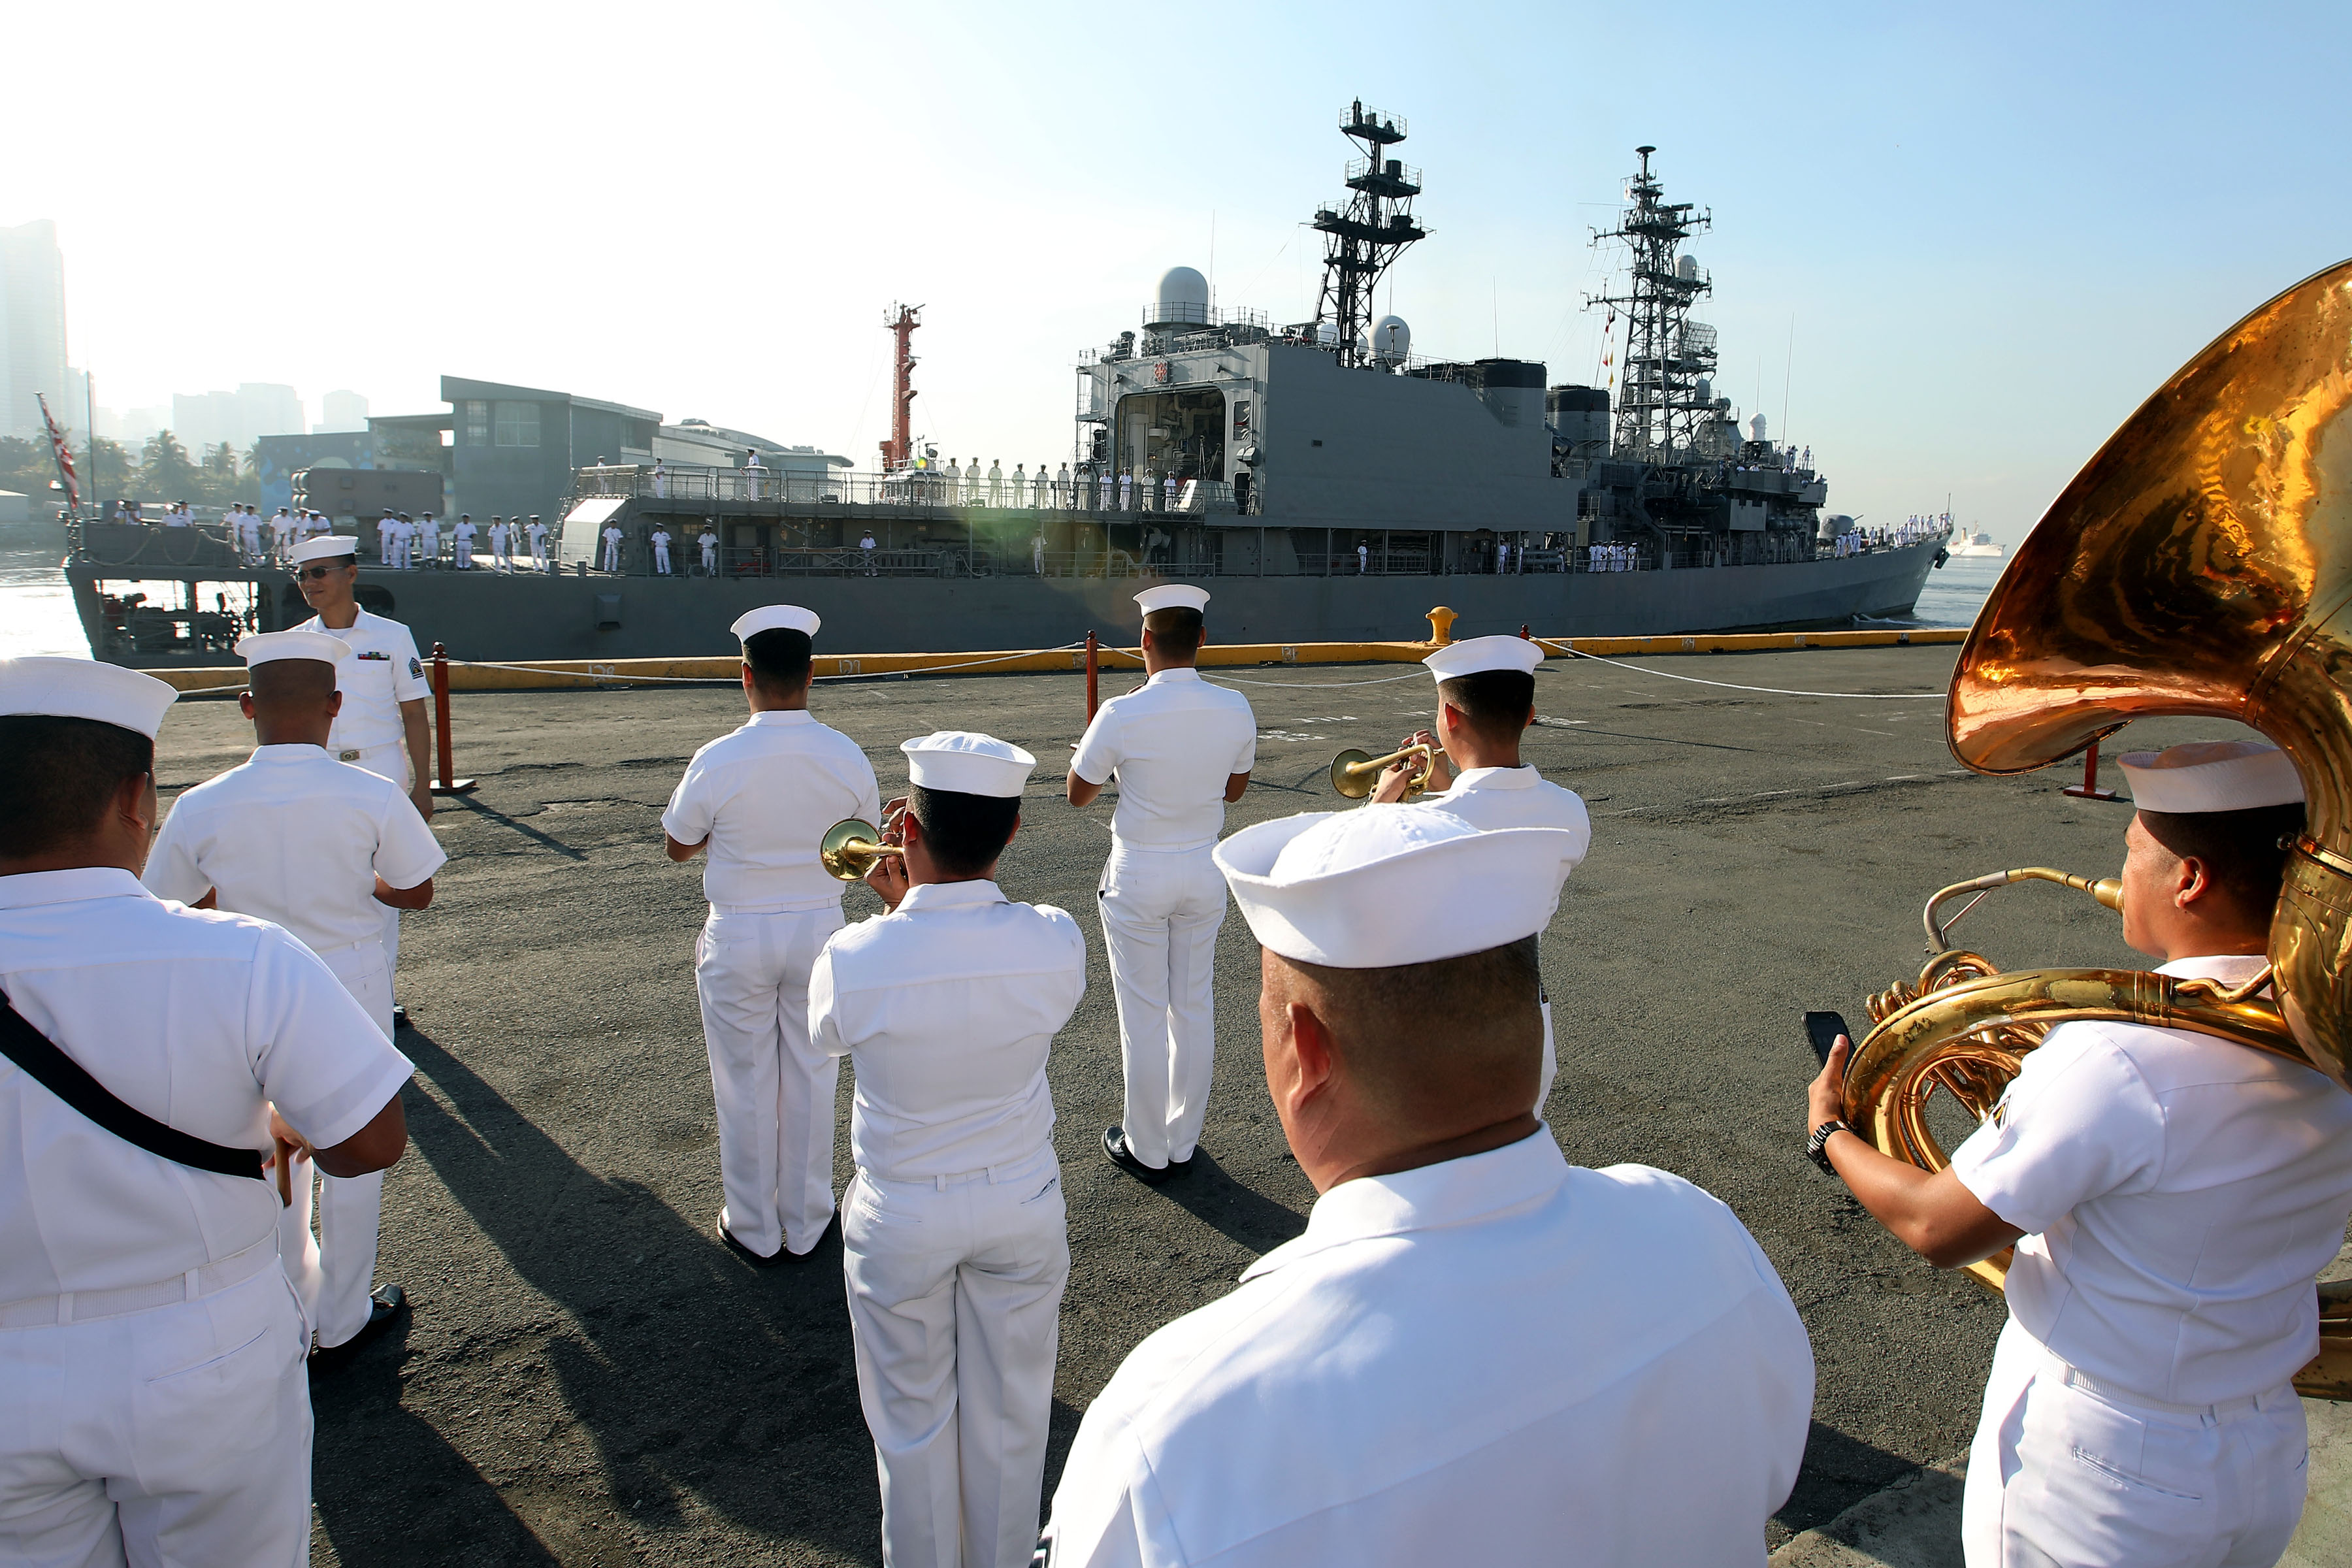 """PH-JAPAN NAVAL COOPERATION. The Philippine Navy (PN) band welcomes the Japanese destroyer, JS Amagiri (DD-154), for the """"PASSEX"""" (also known as passage exercises) on Friday (Feb. 2, 2018) held at the Manila South Harbor in Manila City. The PASSEX involves communication exercises between PN units and anti-collision procedures. JS Amagiri, meanwhile, is an Asagiri-class destroyer and specializes in anti-submarine and anti-surface warfare. (PNA photo by Joey Razon)"""